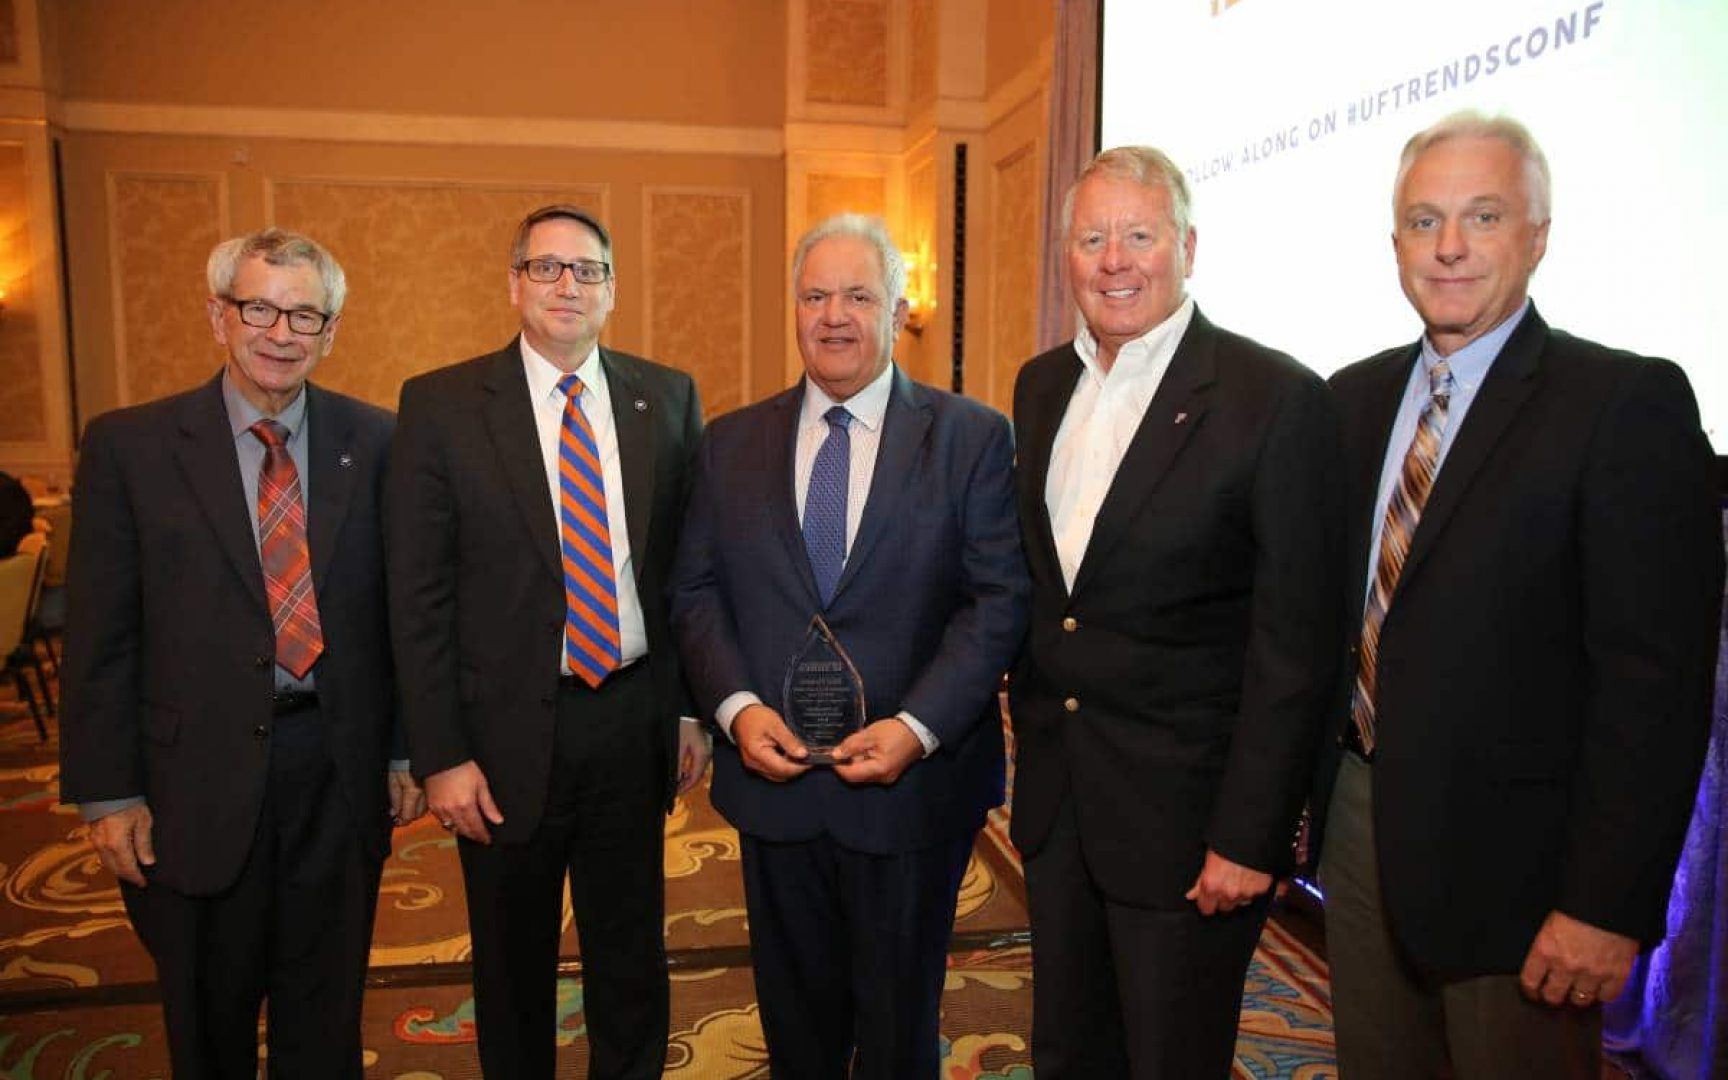 UF Board of Trustees member inducted in Bergstrom Center's Hall of